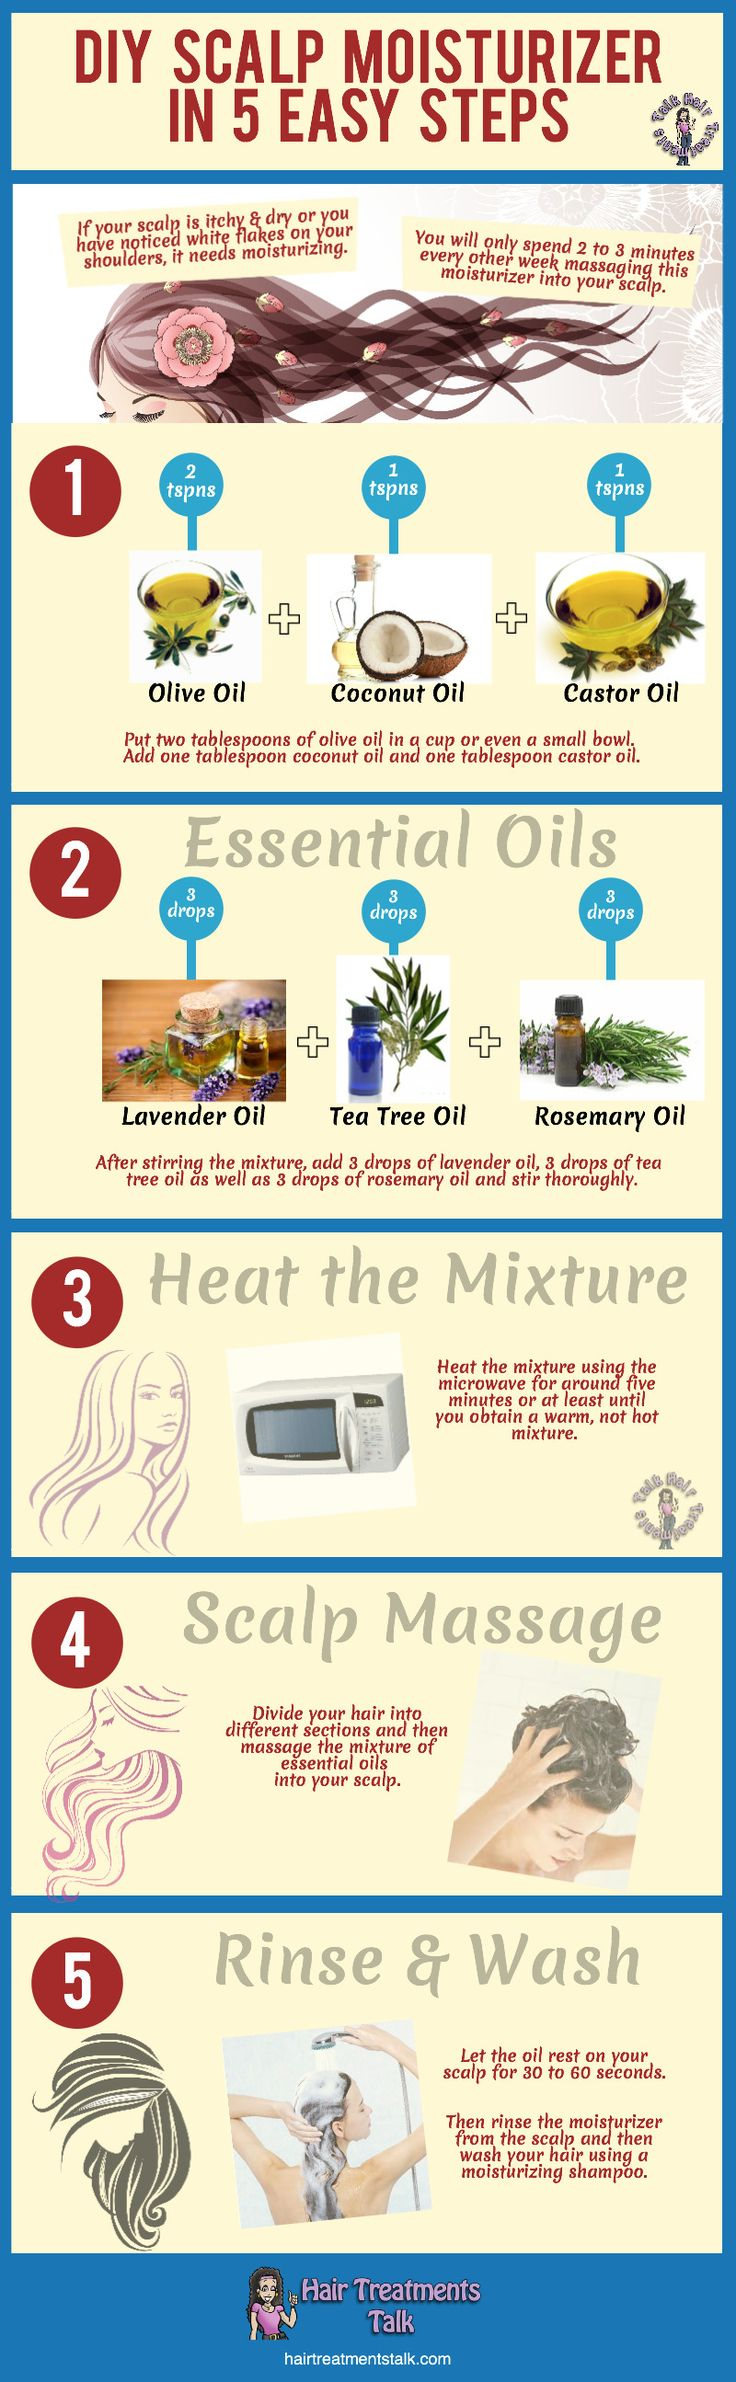 DIY: Easy Homemade Scalp Moisturizer in 5 Easy Steps #hair #hairtreatments #haircare Infographic from hairtreatmentstalk.com @Hair Treatments Talk